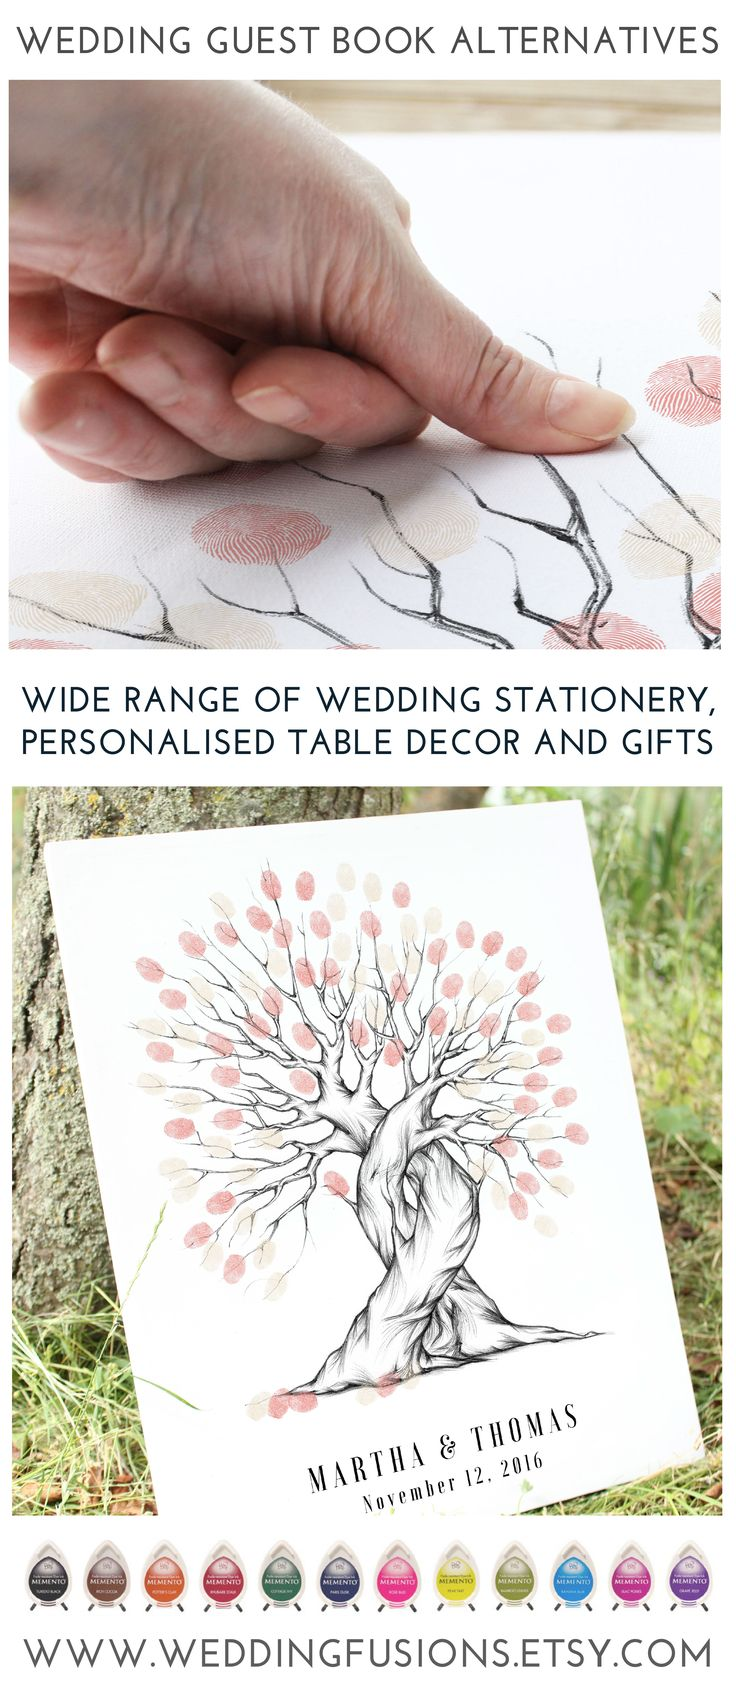 Wedding gift ideas, wedding guest book alternative, wedding gifts for couple…